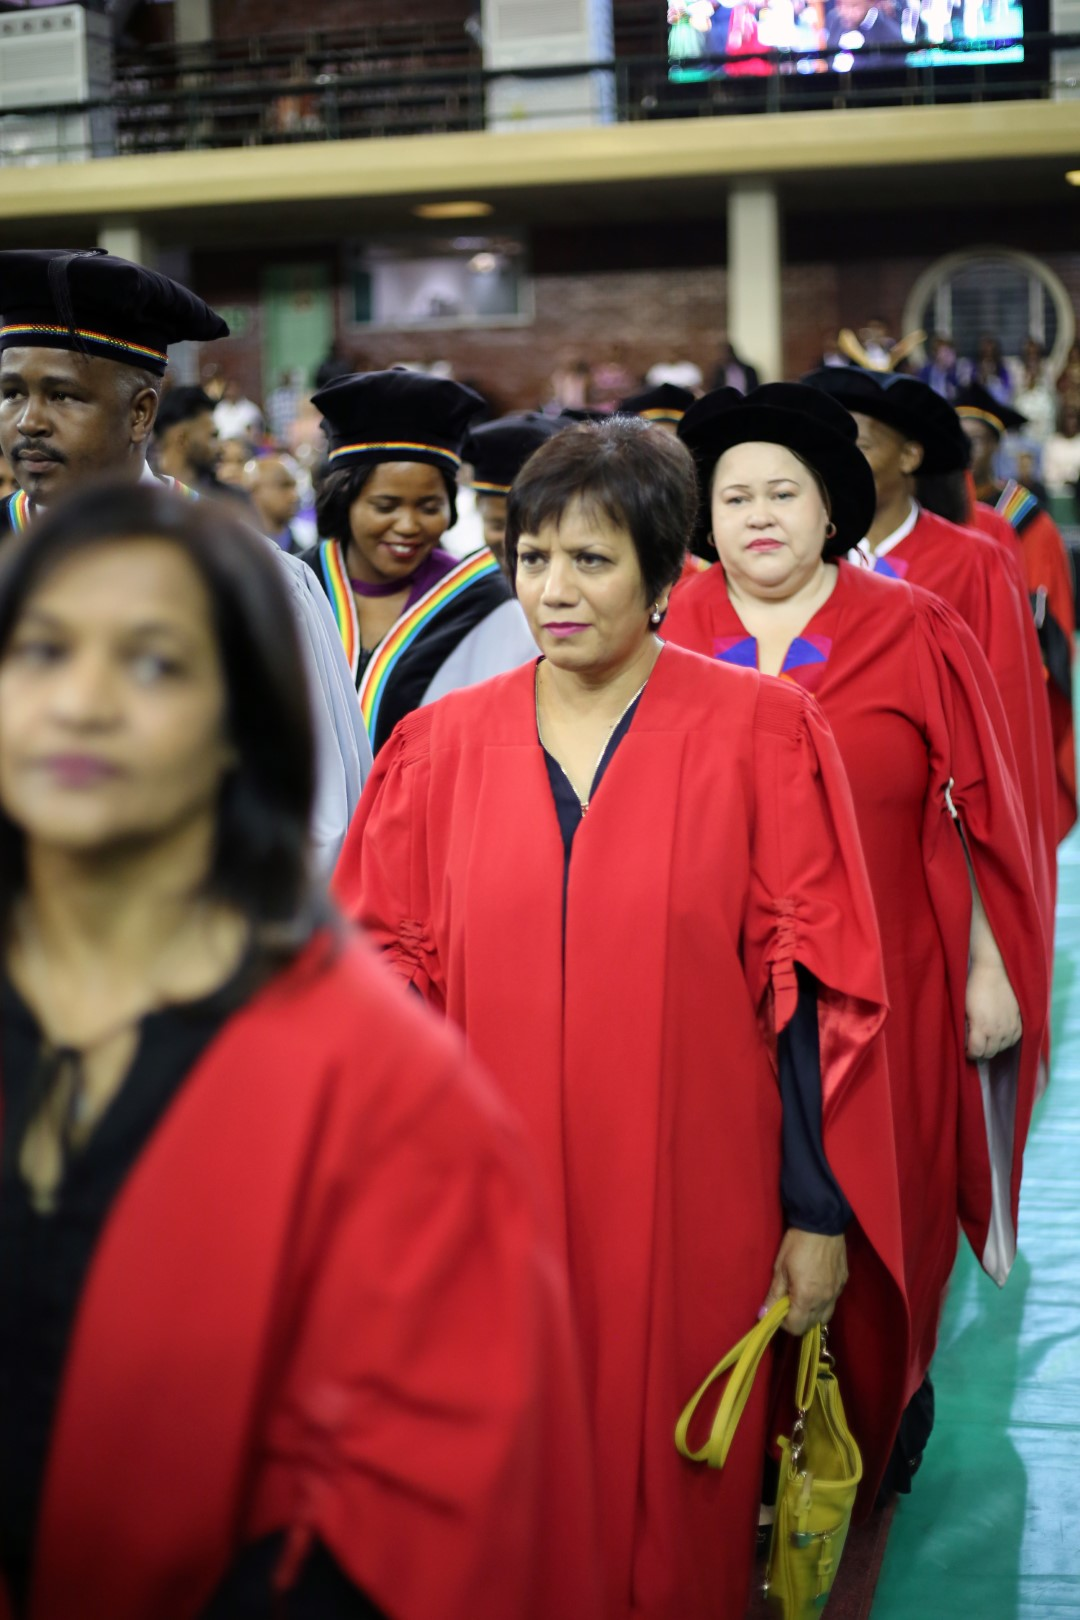 The academic procession enters the hall